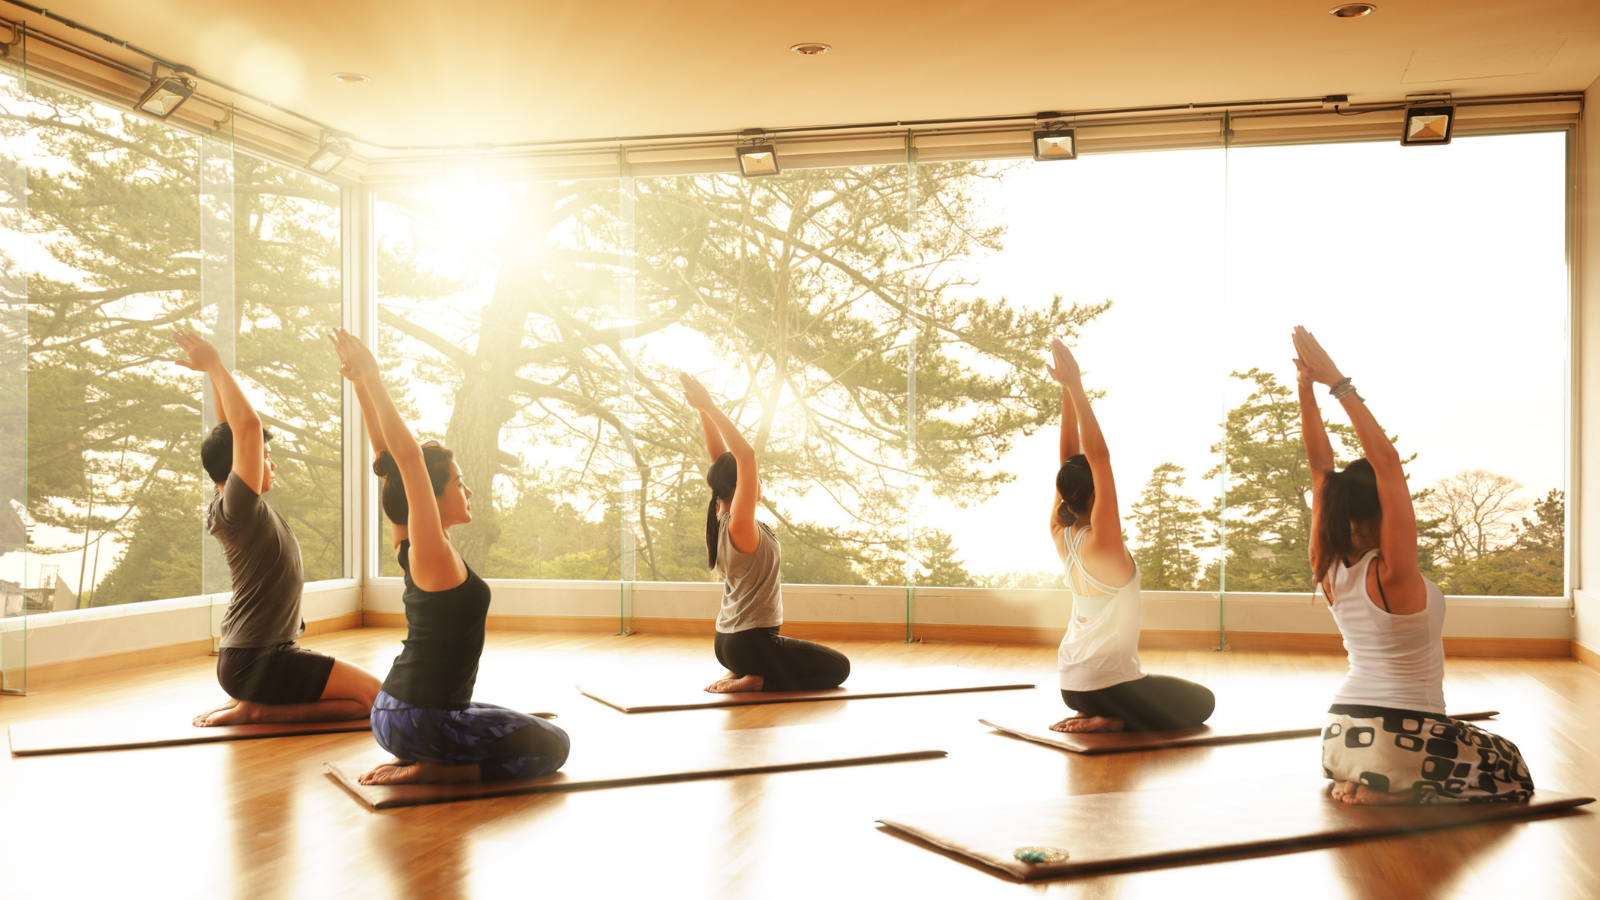 Students practicing yoga's seated sun salutes